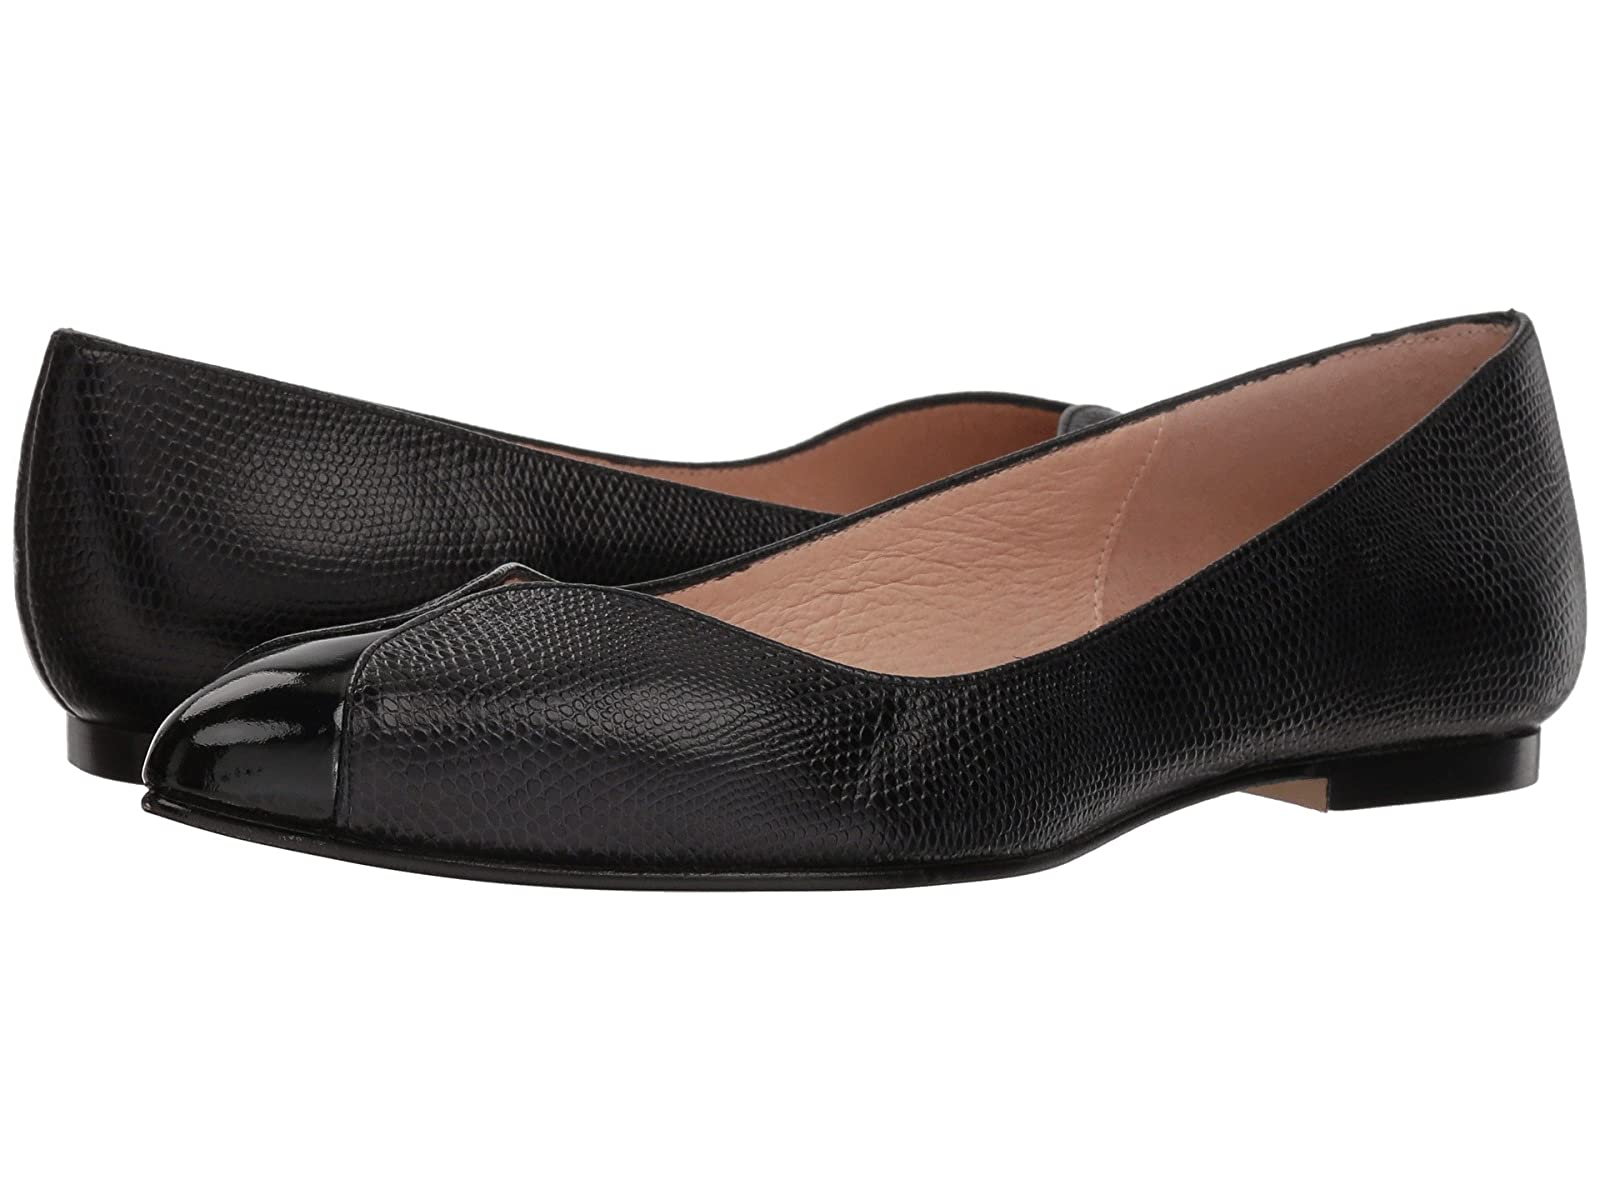 French Sole ZigzagAtmospheric grades have affordable shoes